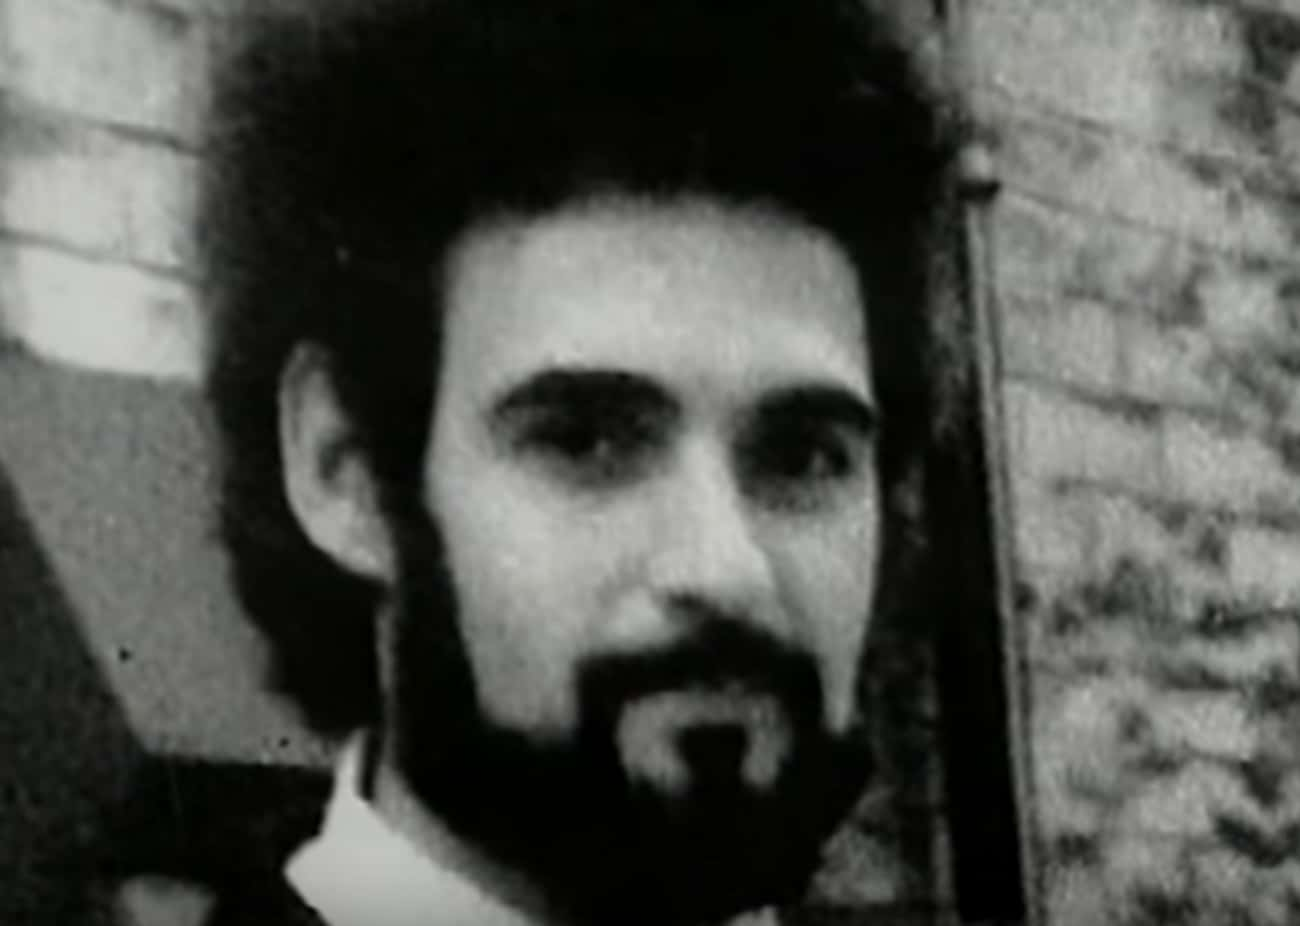 He Said He Was Cleaning Up The is listed (or ranked) 2 on the list Worse Than Jack: The Crimes Of Peter Sutcliffe, The Yorkshire Ripper